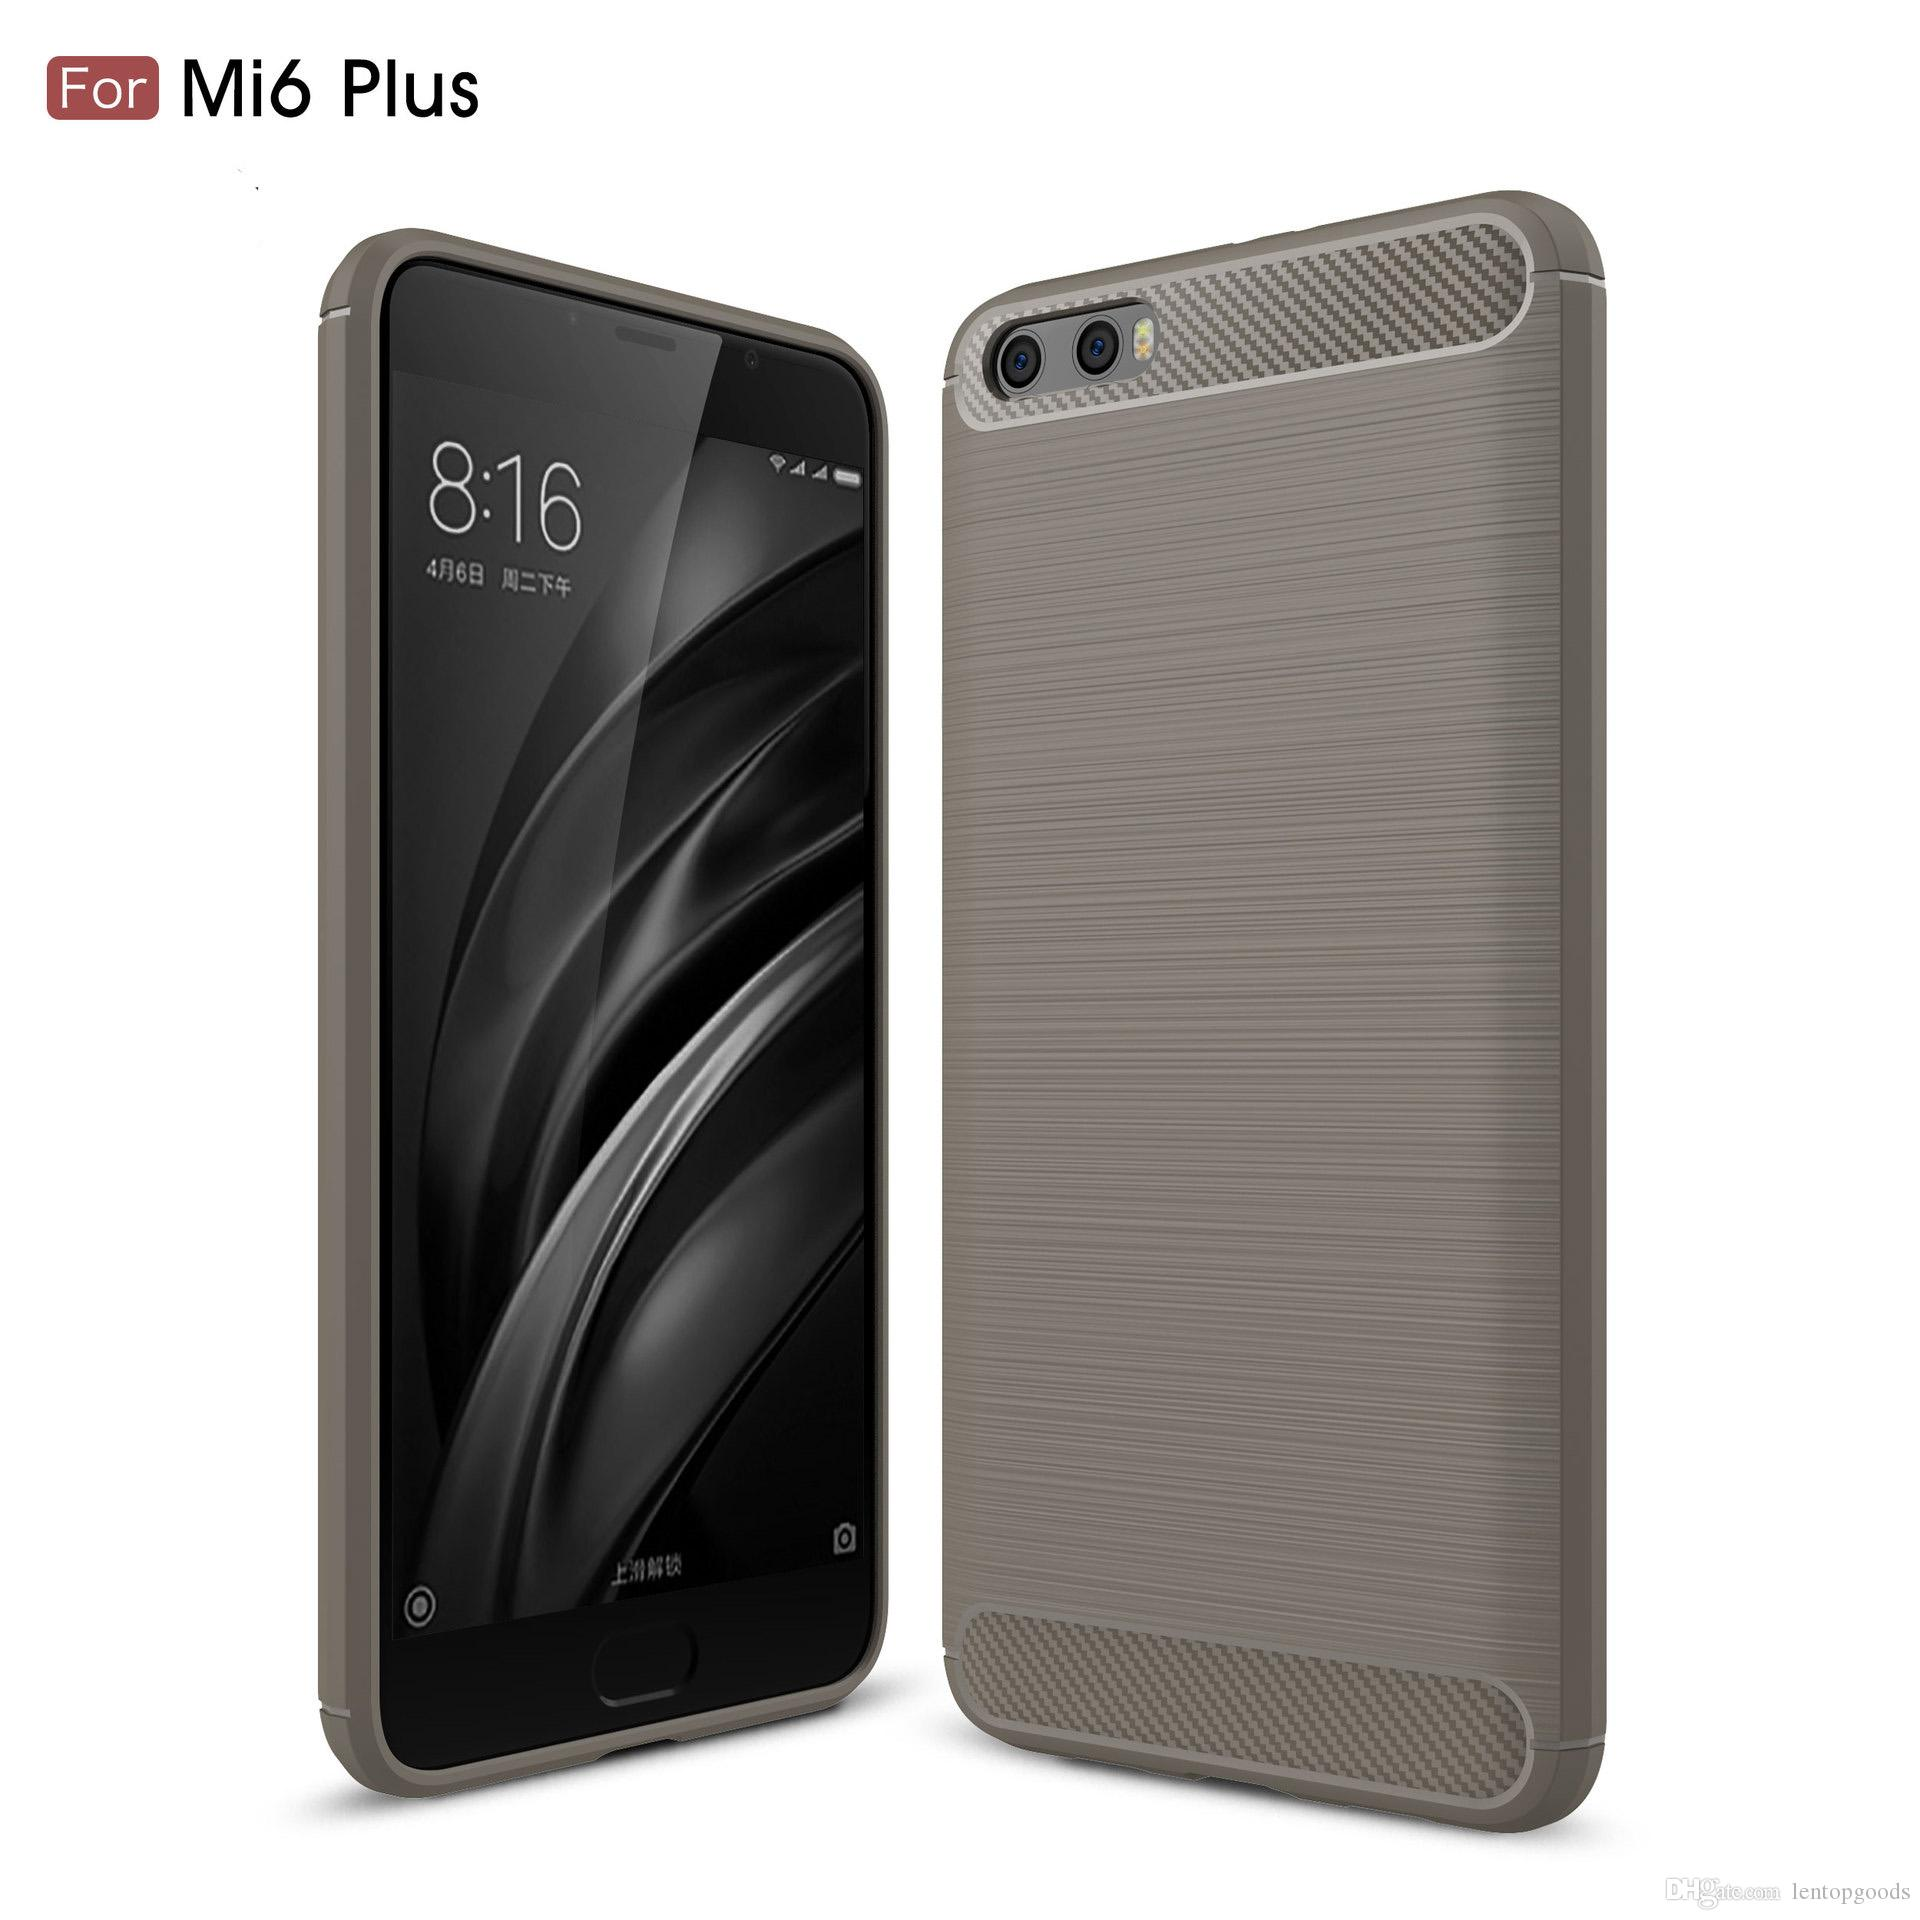 For Xiaomi 5x Redmi 4 Case Carbon Fiber Brushed TPU Case Samsung Galaxy A8 2018 Redmin NOTE 4 Protective Back Cover